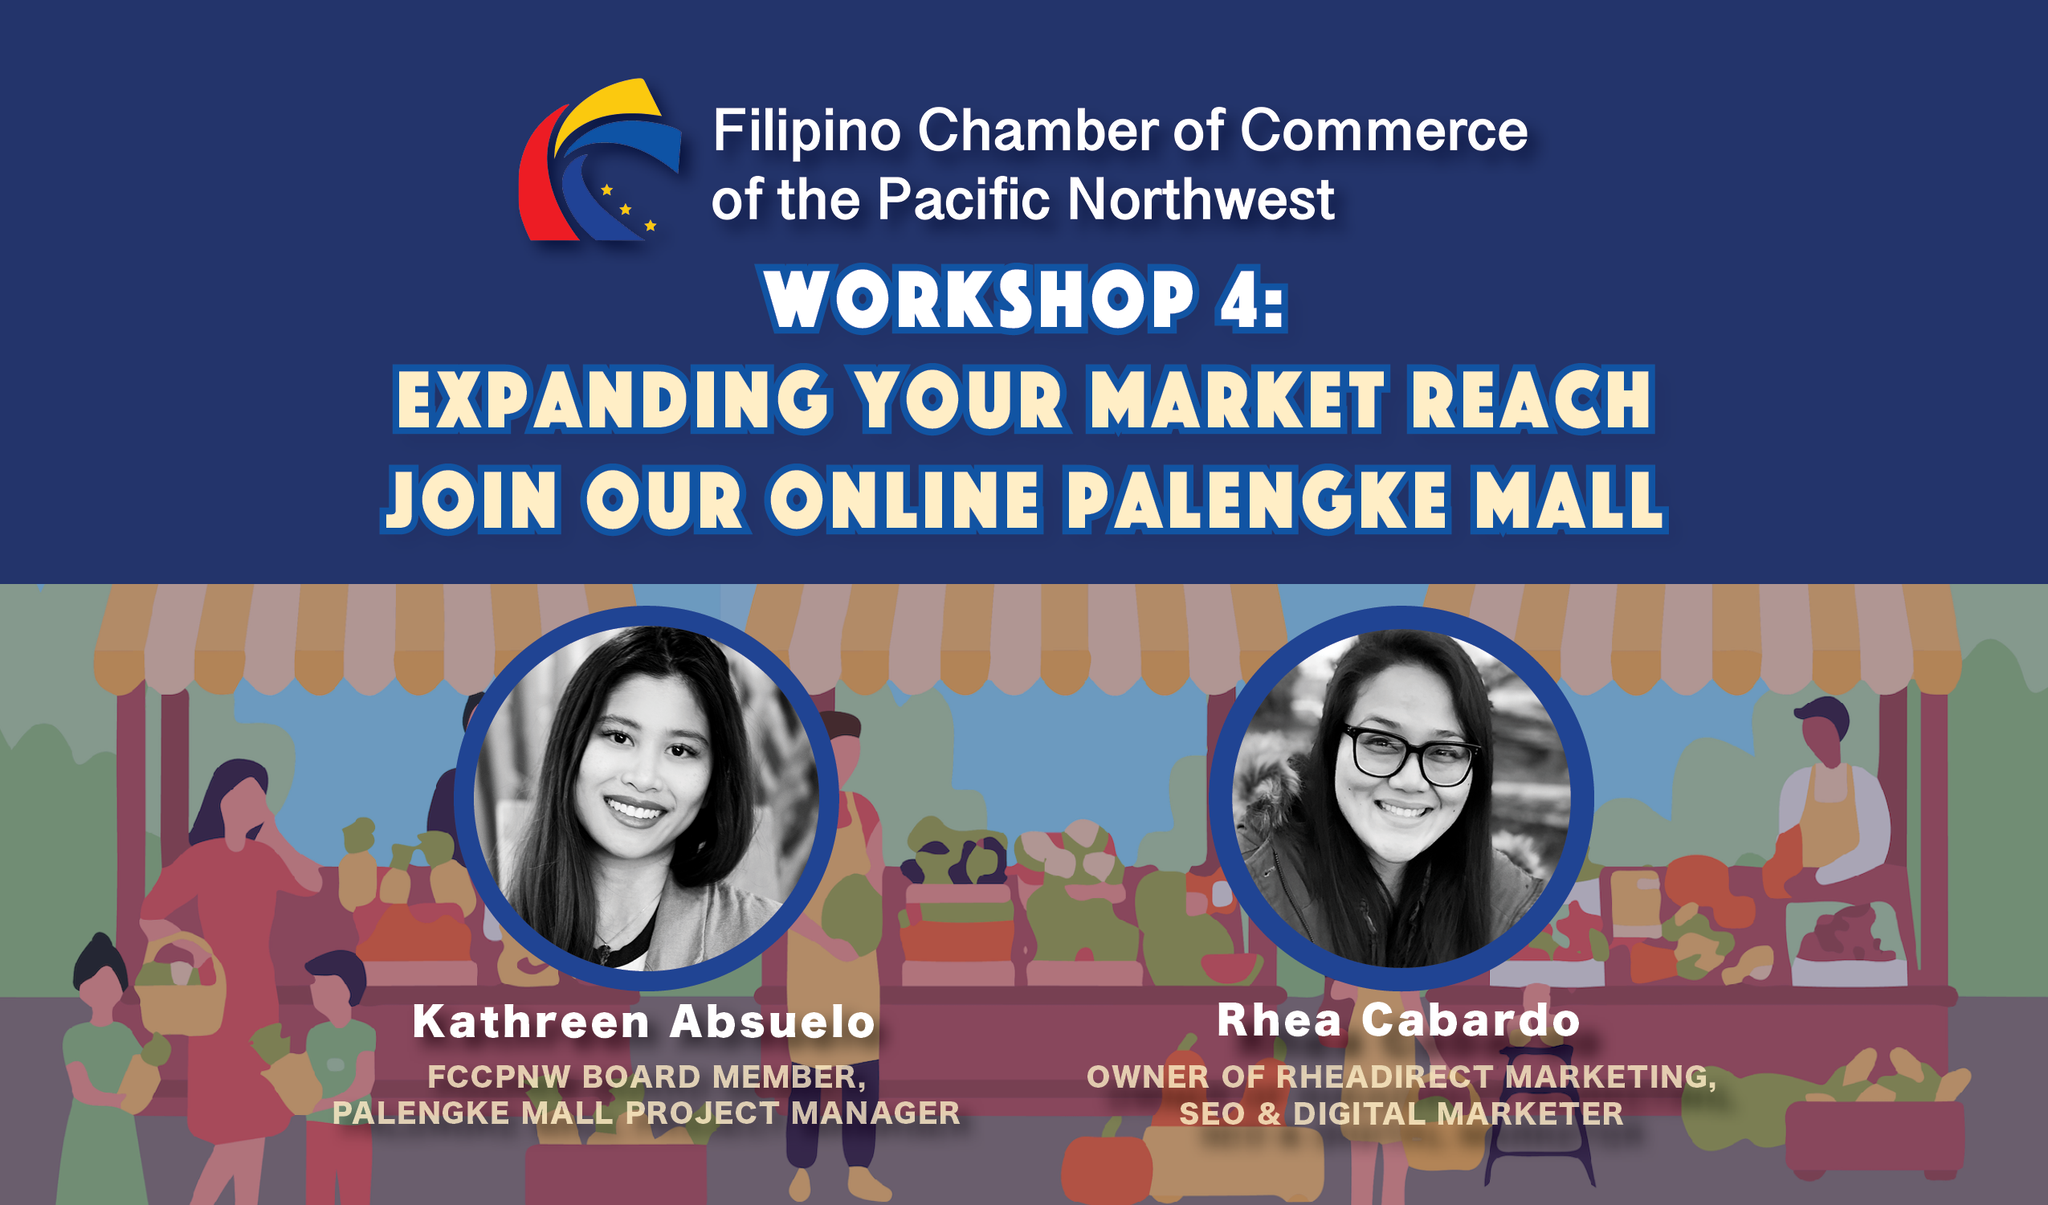 2020 Fall Workshop 4: Expanding Your Market Reach, Join our Online Palengke Mall - December 10, 2020